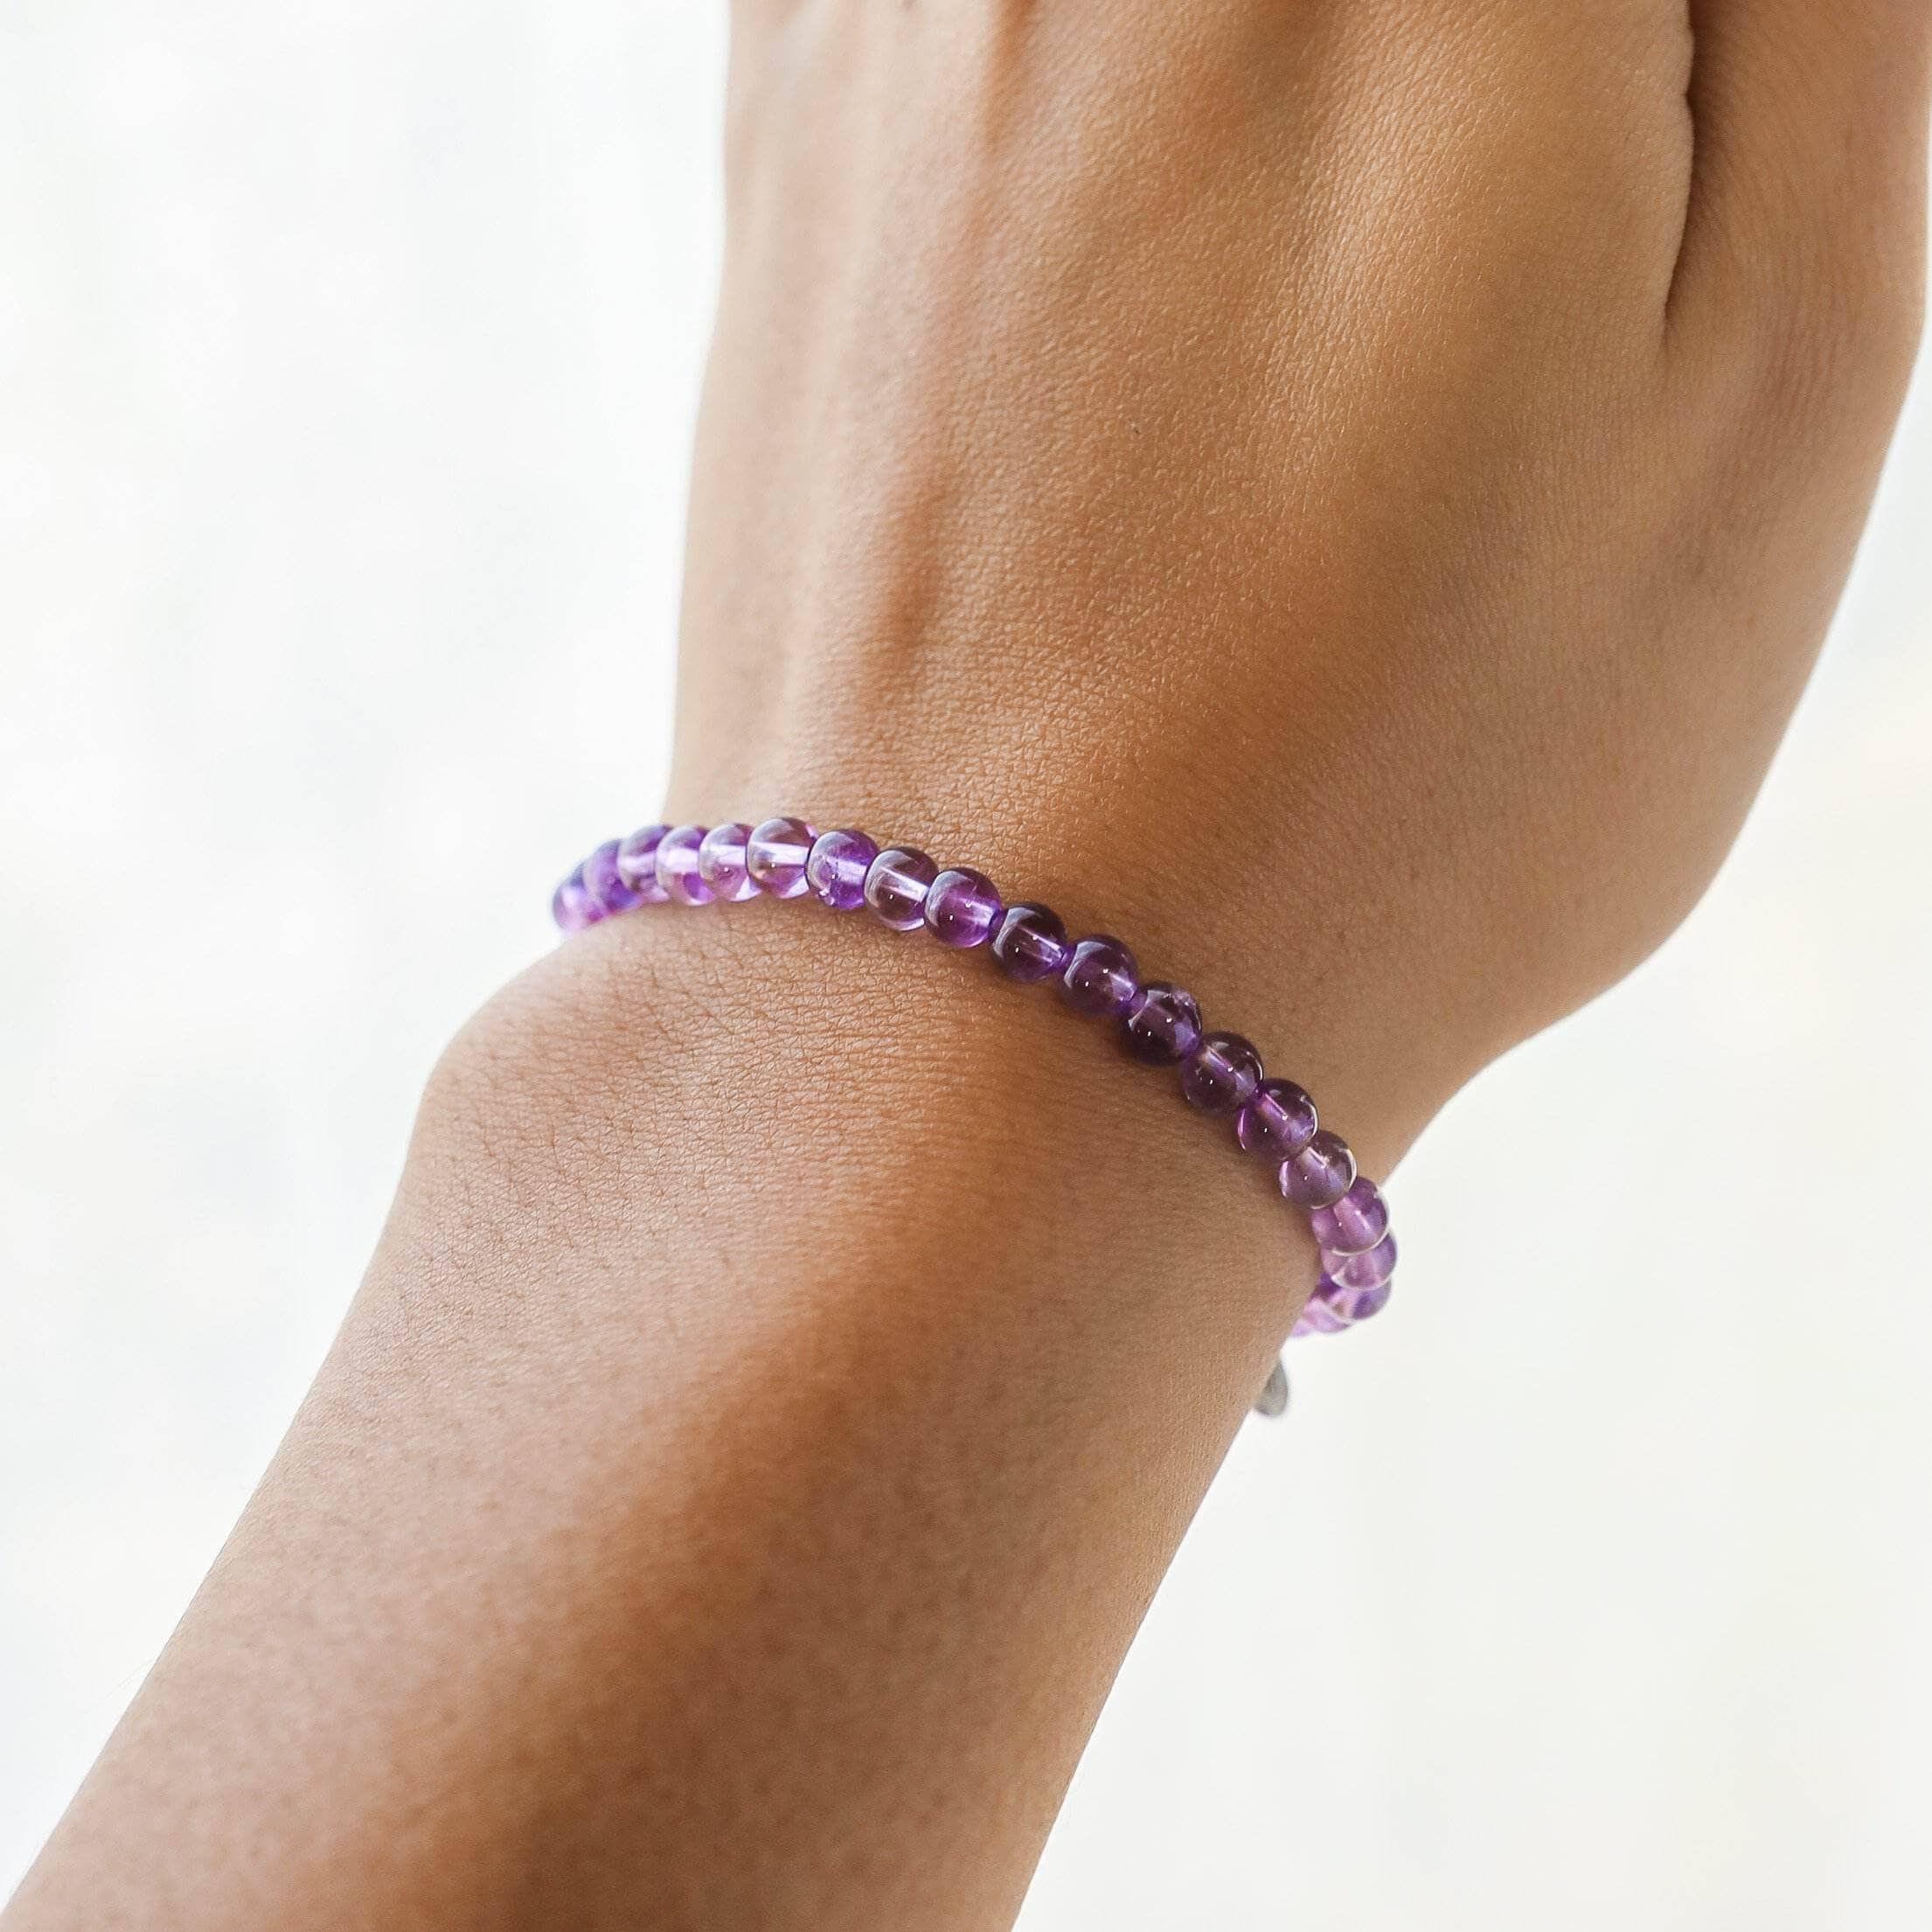 close up of wrist with amethyst energy bracelet